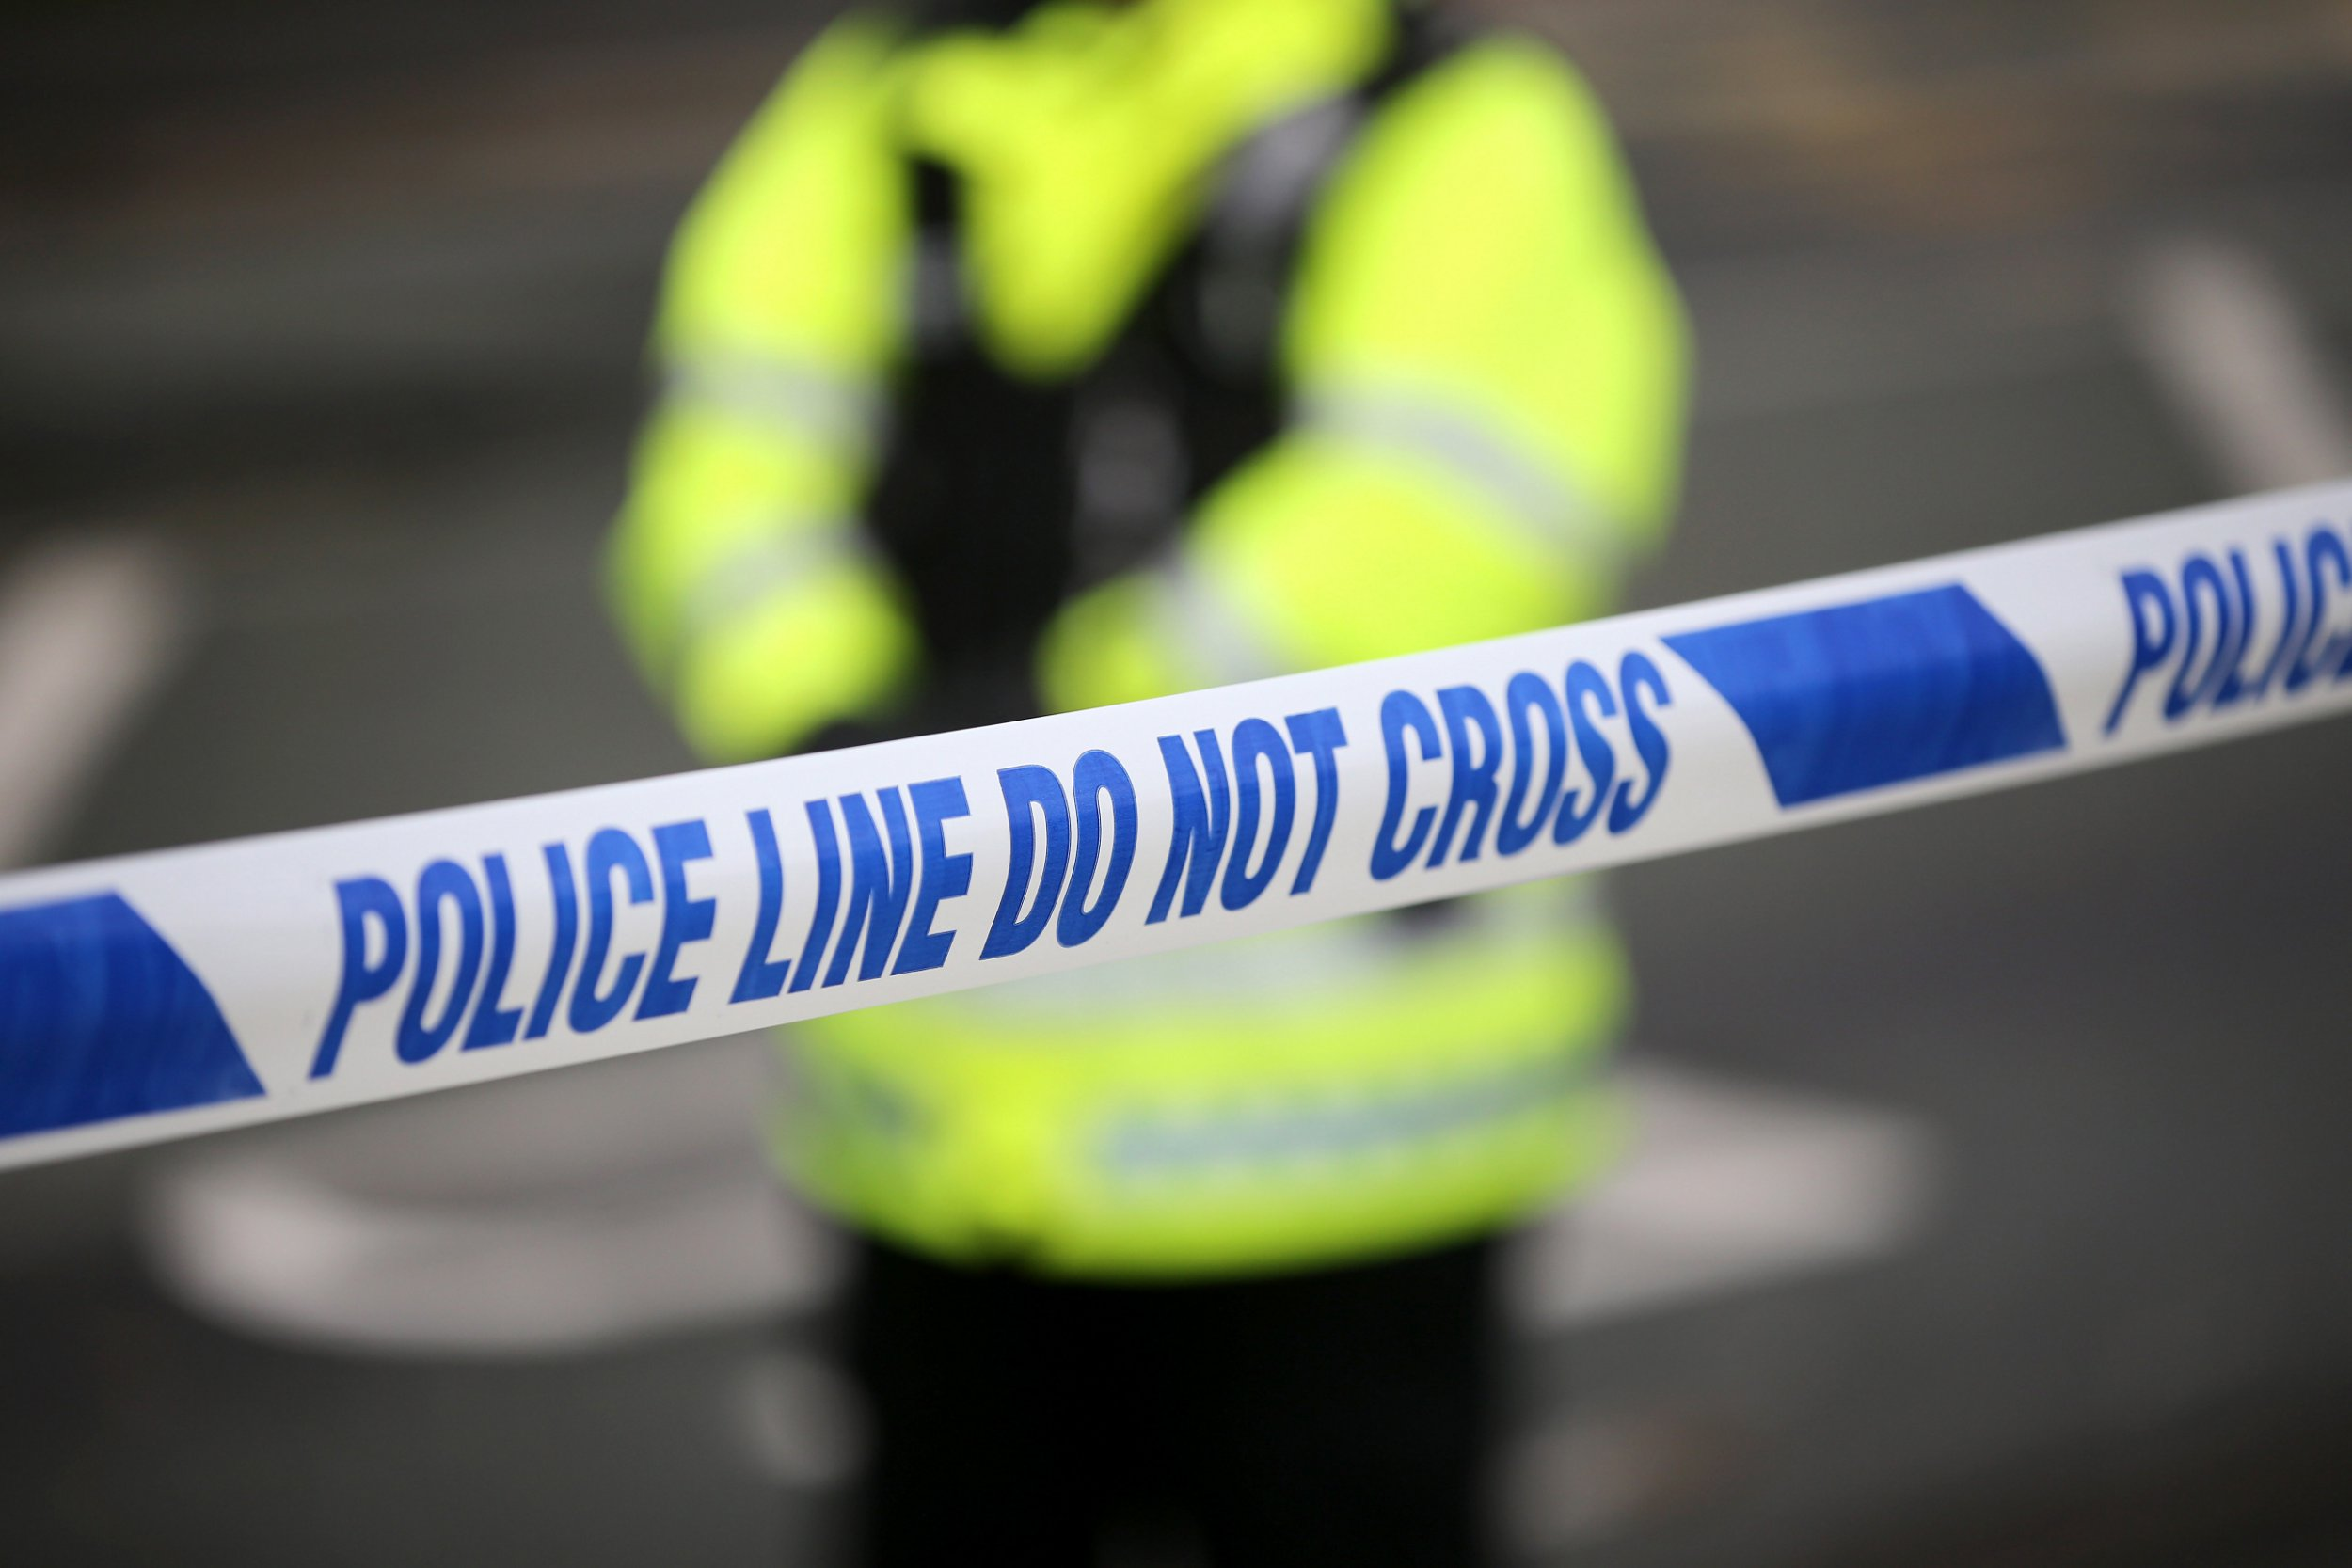 MANCHESTER, ENGLAND - SEPTEMBER 19: Police tape cordons off the scene of the shooting of WPC's Nicola Hughes and Fiona Bone in Hattersley on September 19, 2012 in Manchester, England. Local man Dale Cregan, 29, has been arrested in connection with the shooting of WPC's Nicola Hughes and Fiona Bone, who were killed as they responded to a routine incident at Abbey Gardens in Hattersley shortly before 11am yesterday. (Photo by Christopher Furlong/Getty Images)